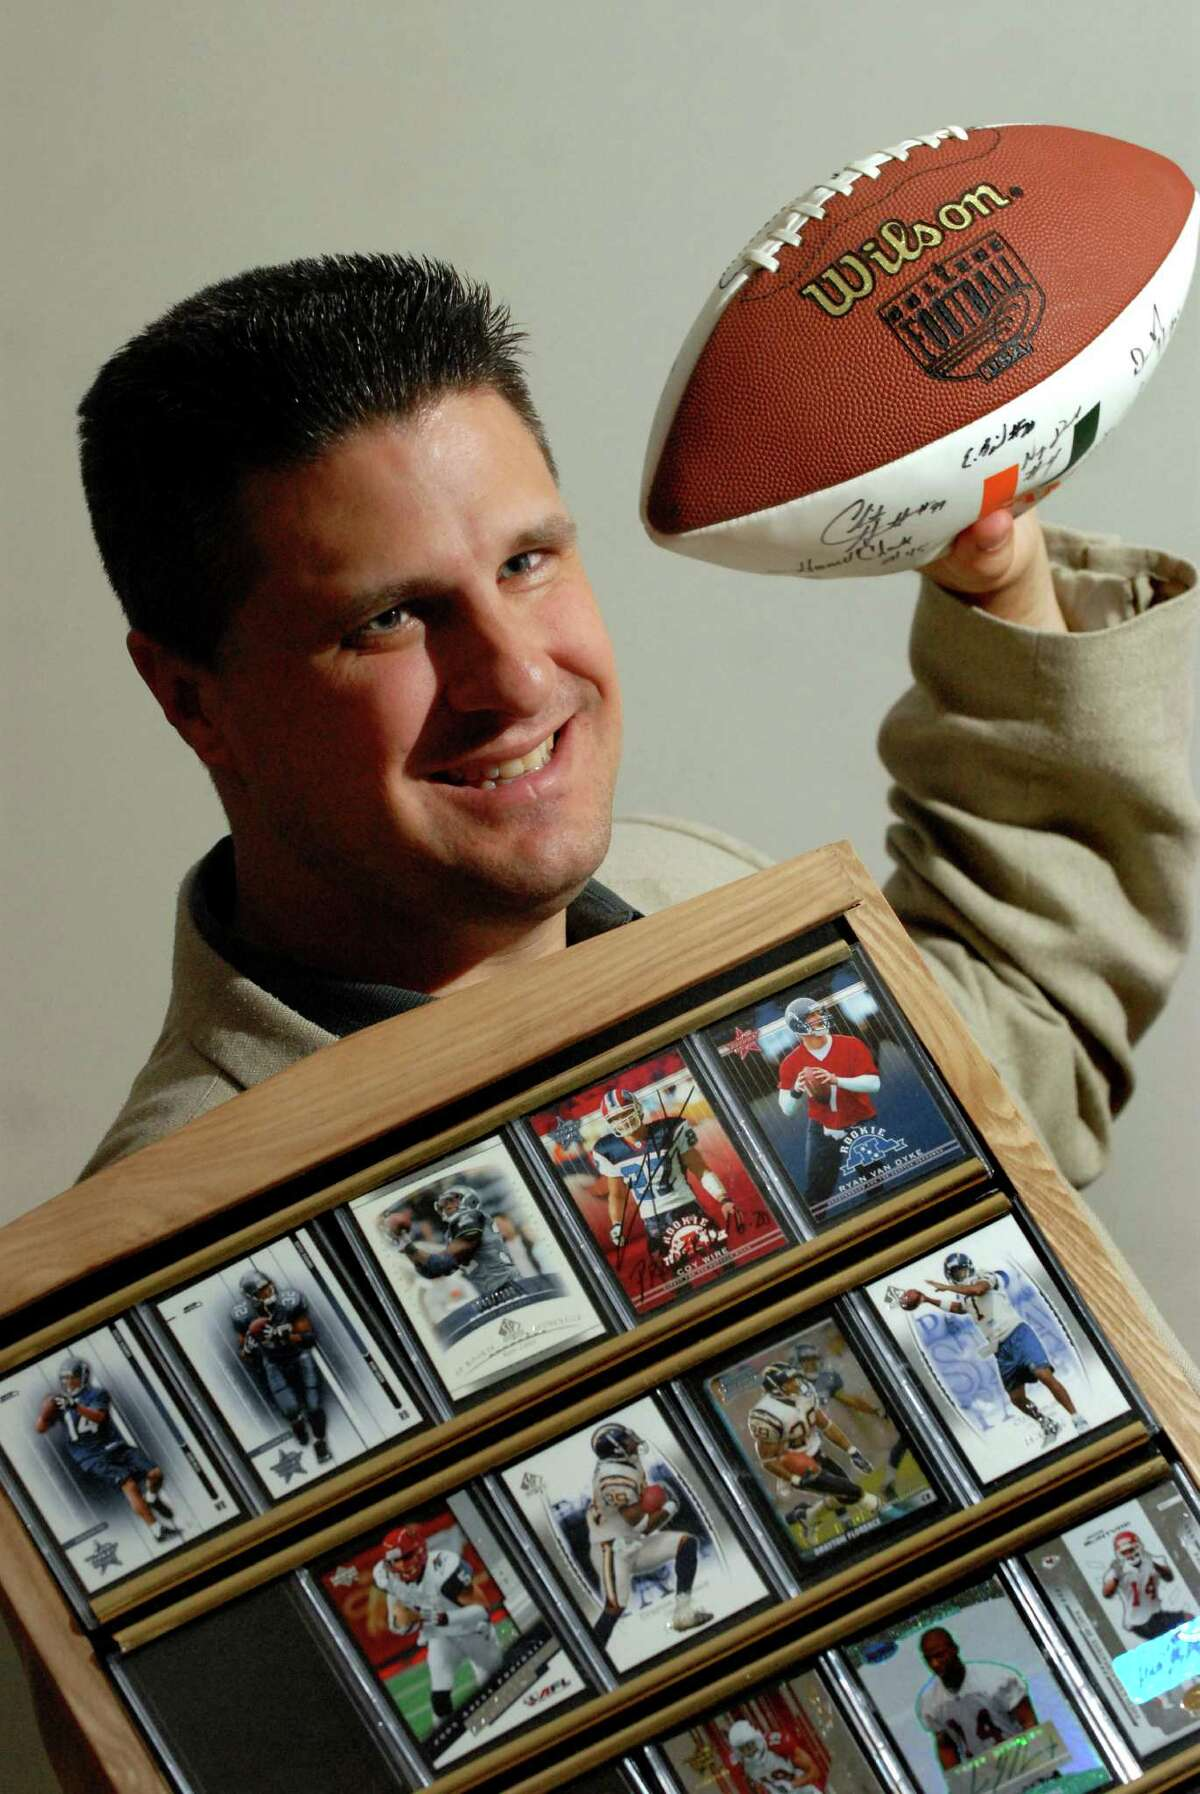 Local NFL agent J.R. Rickert poses with a football and collection of football player cards in his Niskayuna home in 2006. (Cindy Schultz / Times Union) ORG XMIT: MER2014110714354488